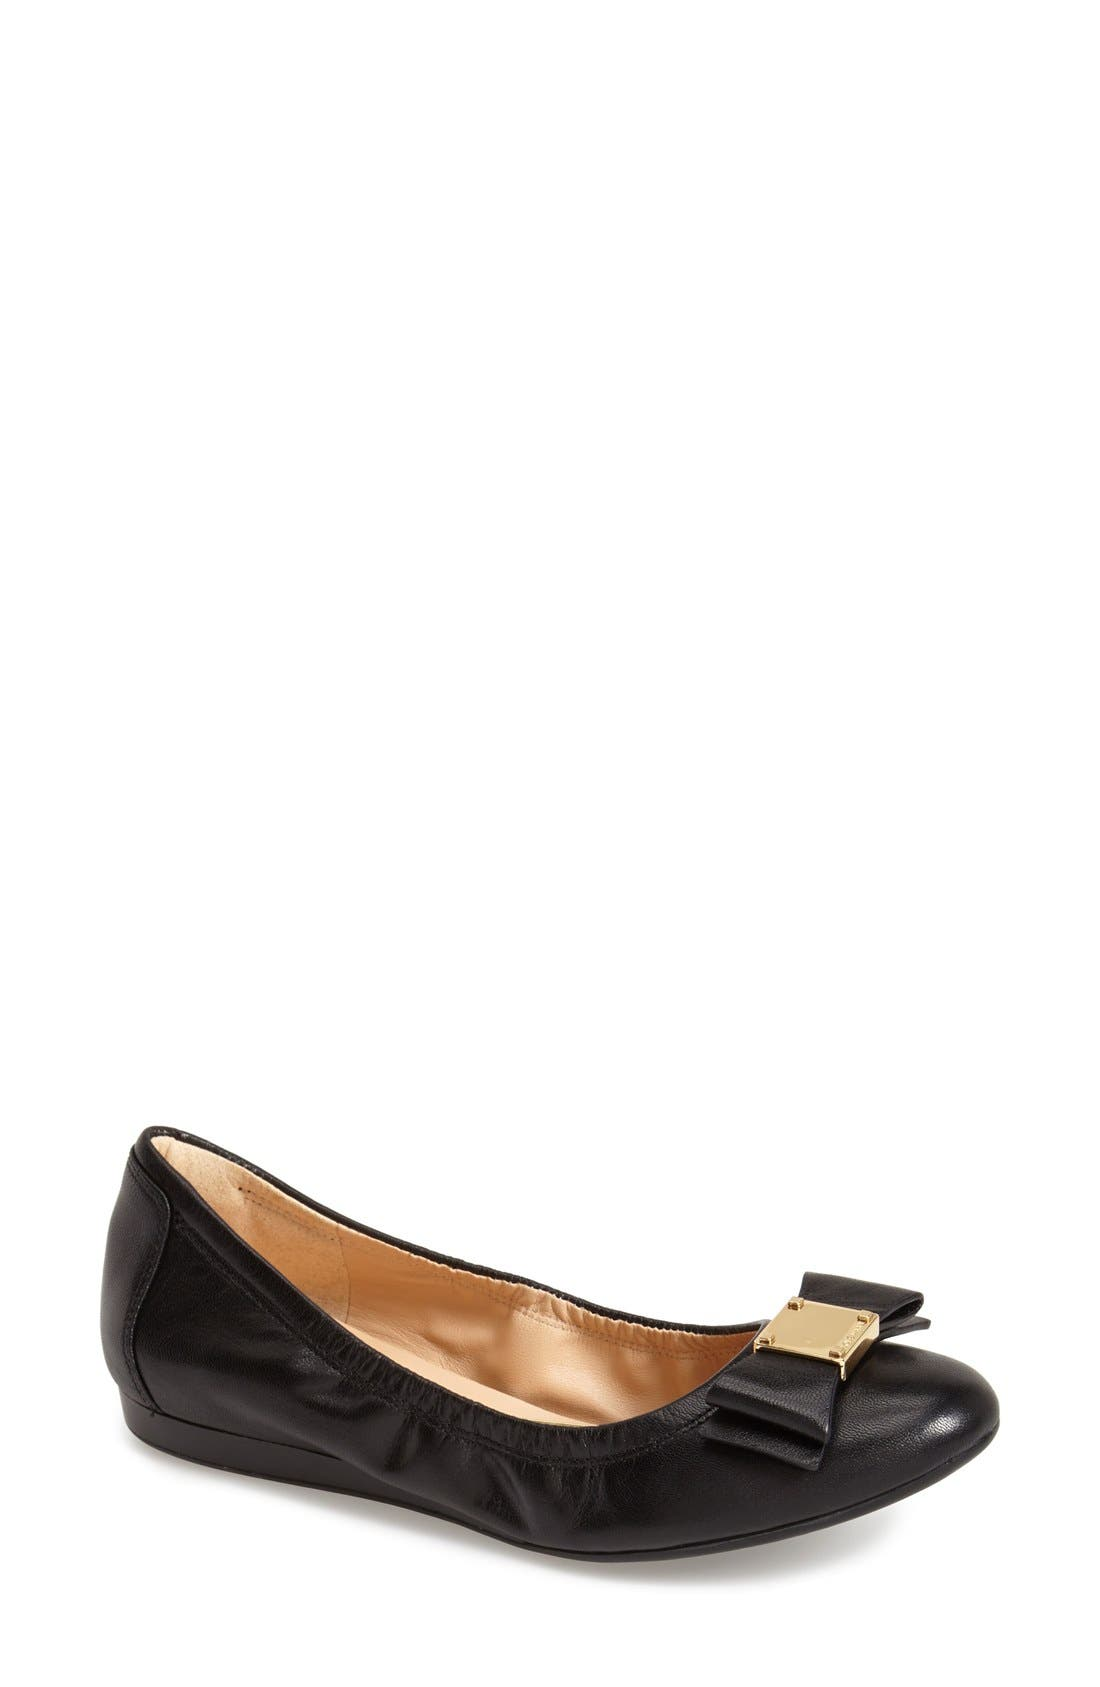 'Tali' Bow Ballet Flat,                         Main,                         color, 001